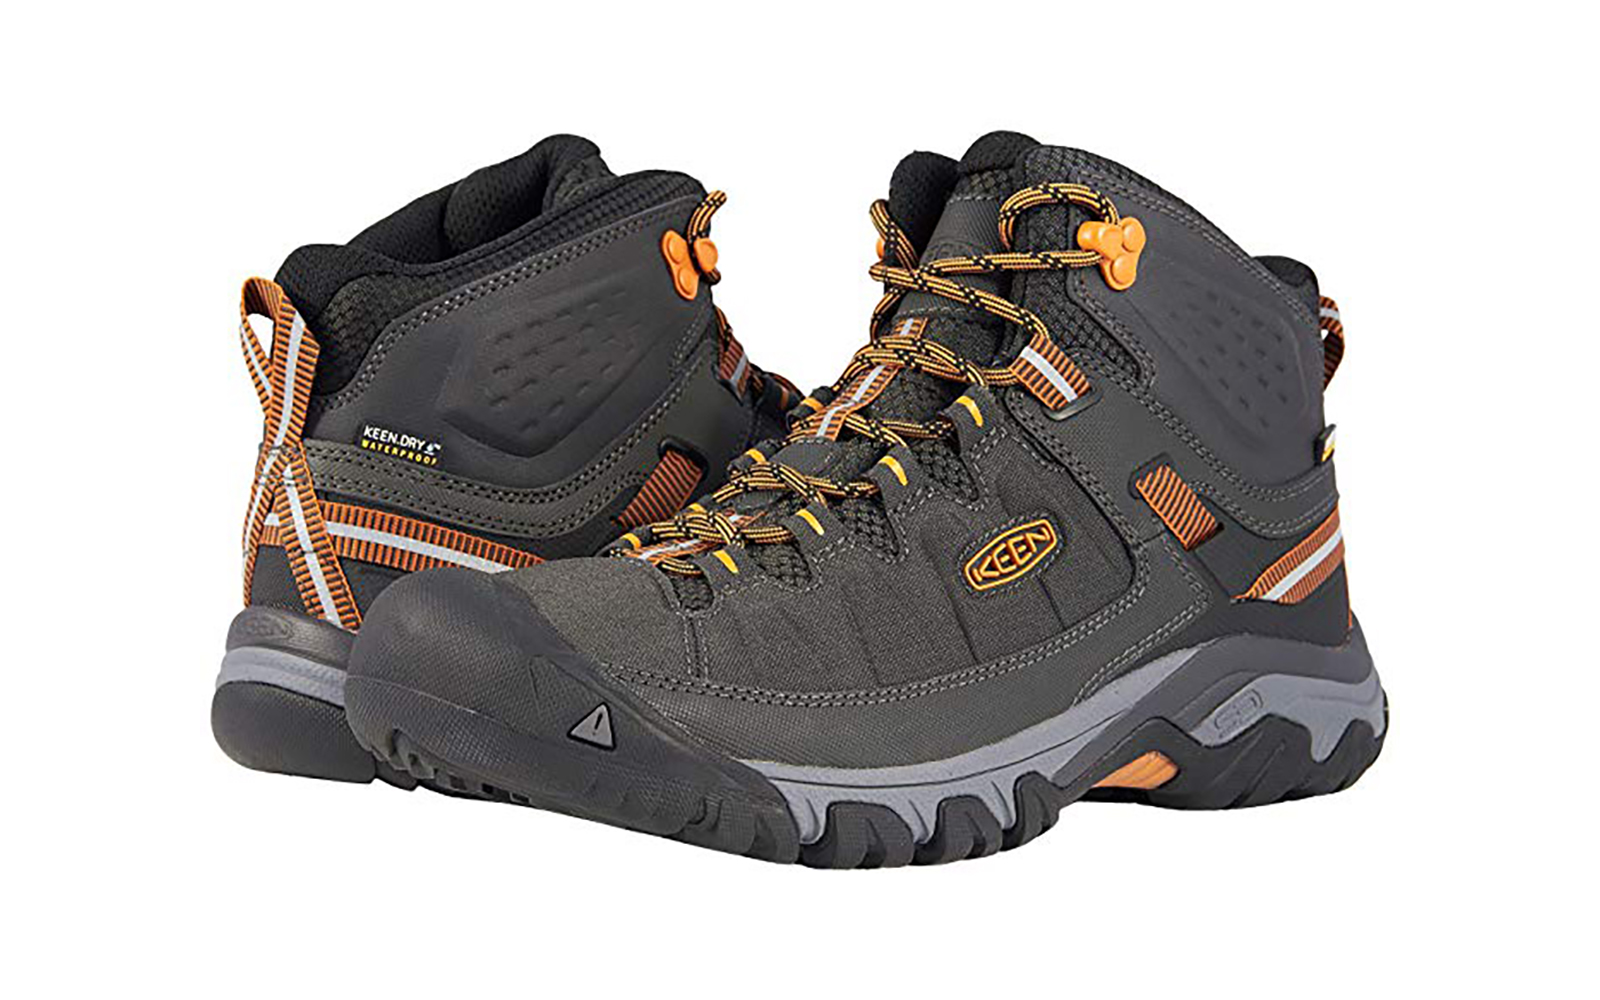 bb9c2161 The 14 Best Hiking Shoes and Boots, According to Reviews | Travel + ...